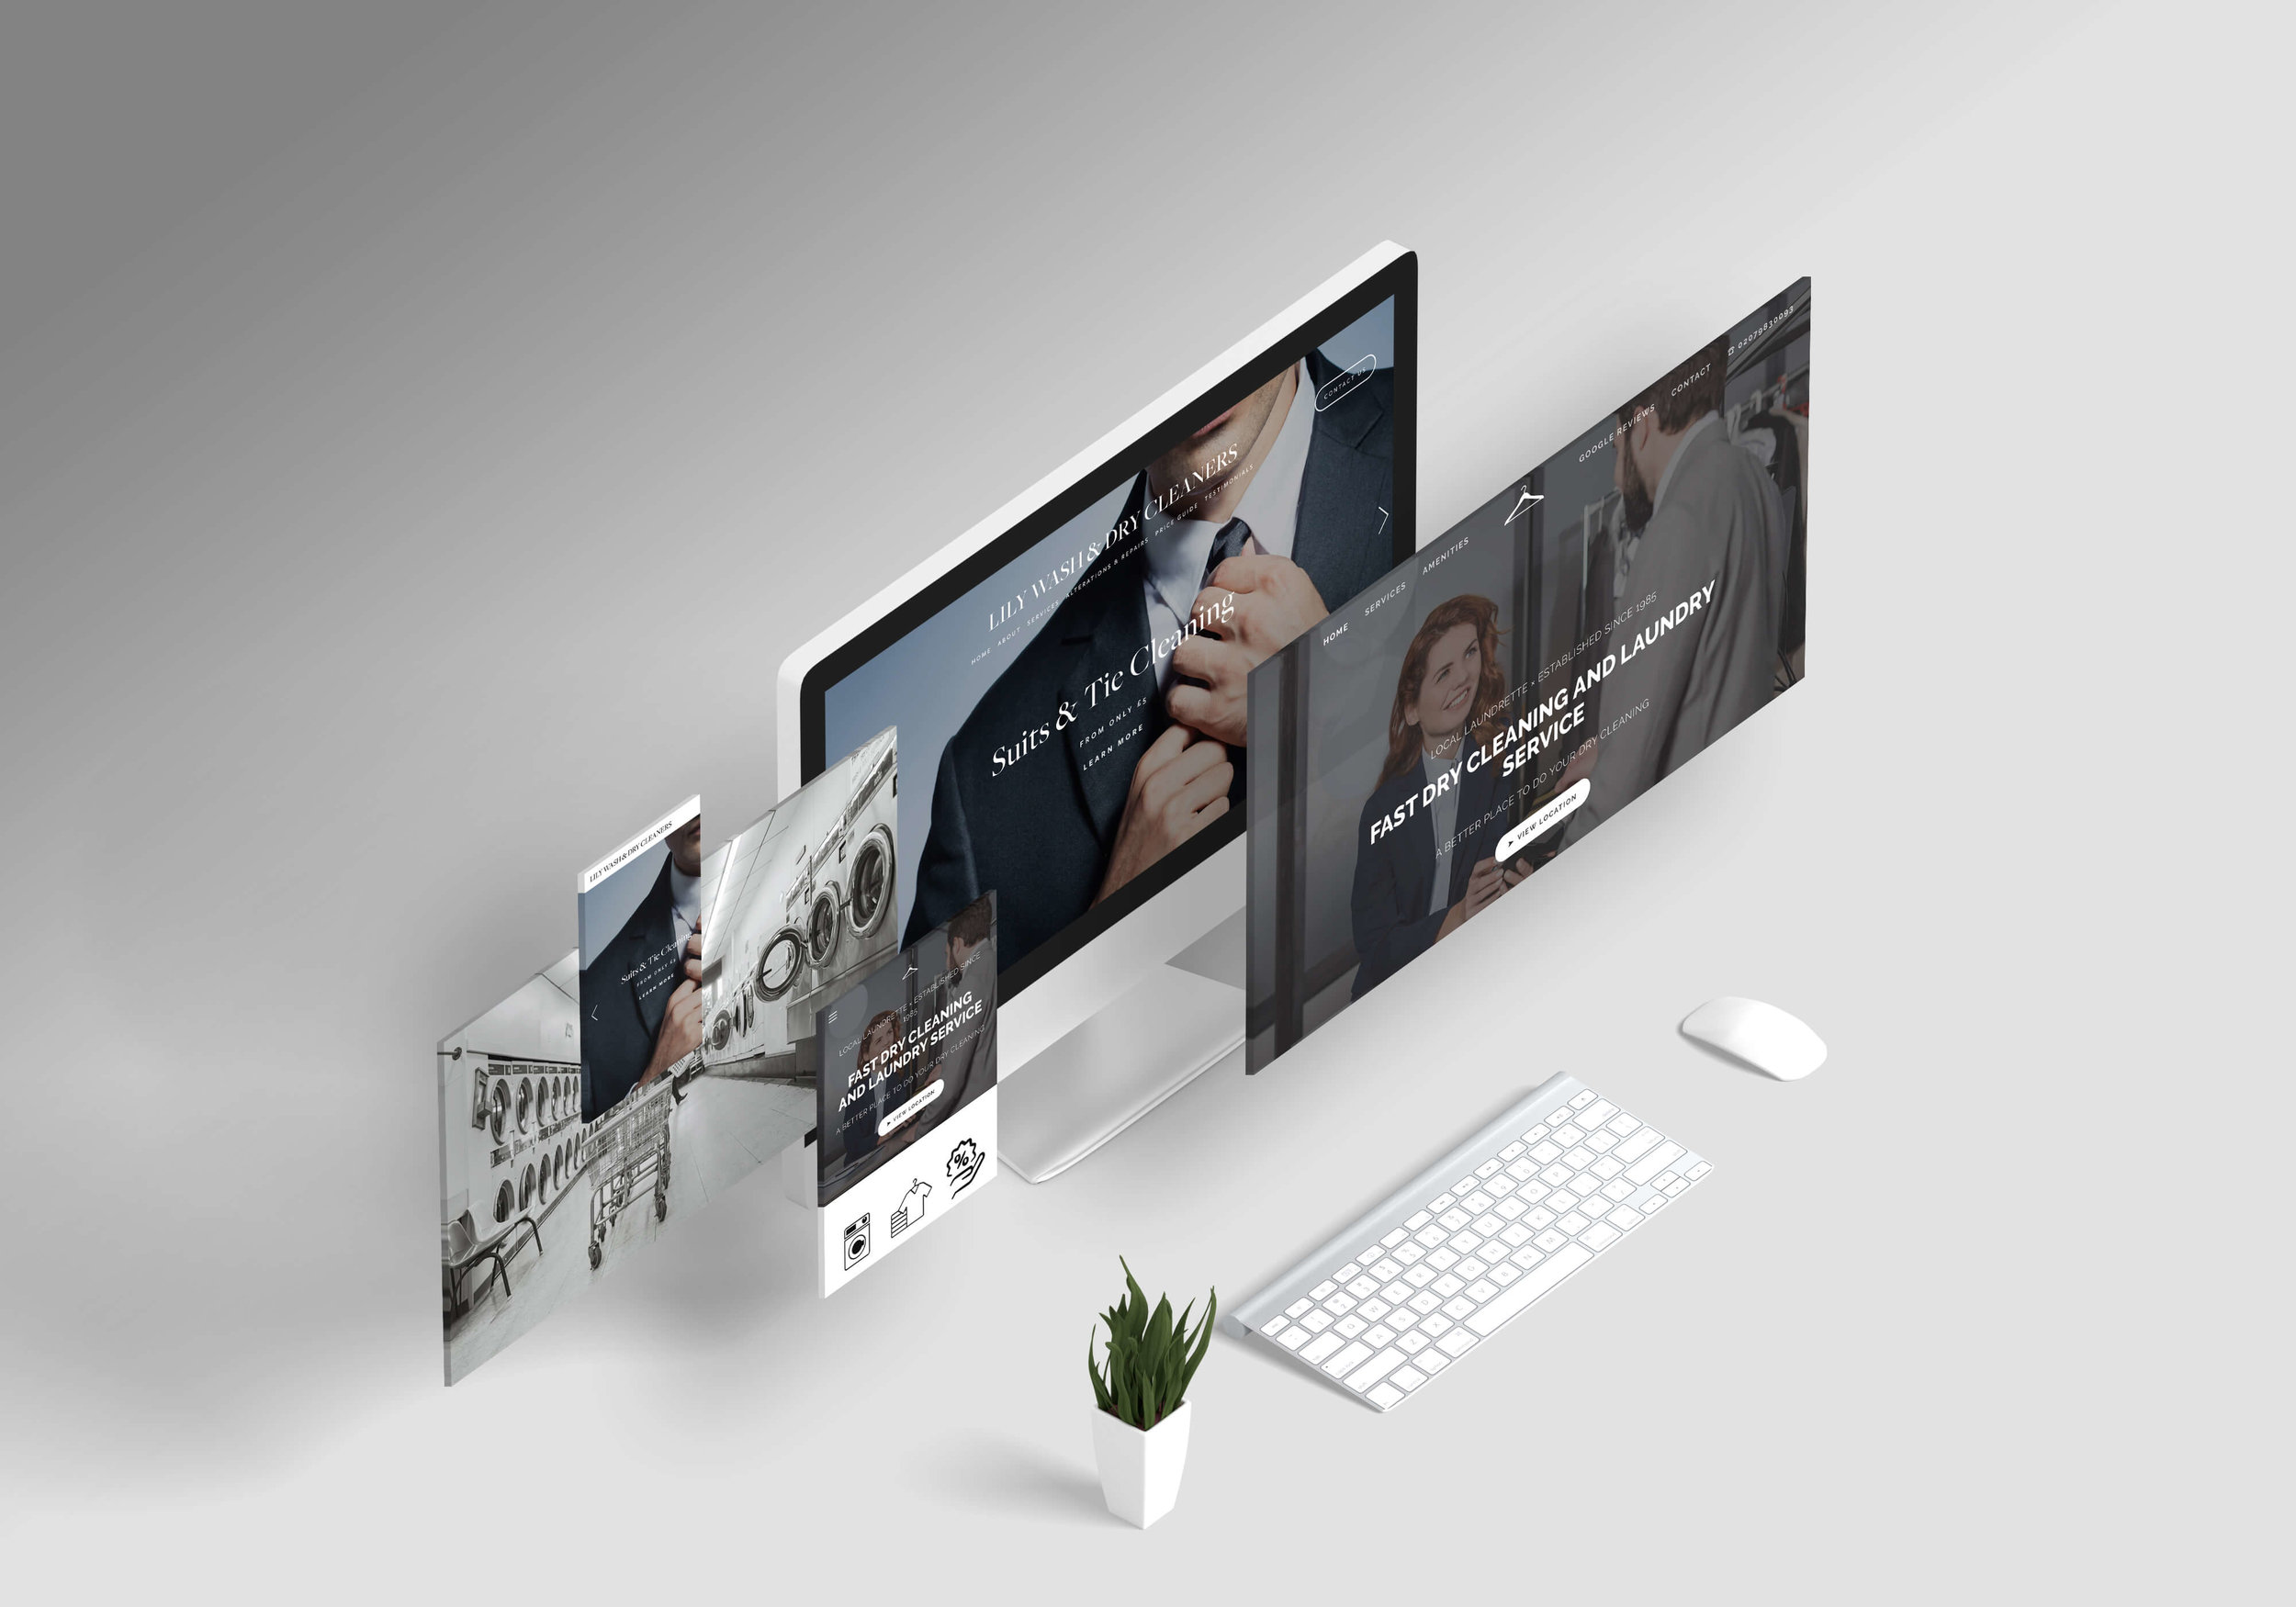 Squarespace is the all-in-one platform to build a beautiful online presence